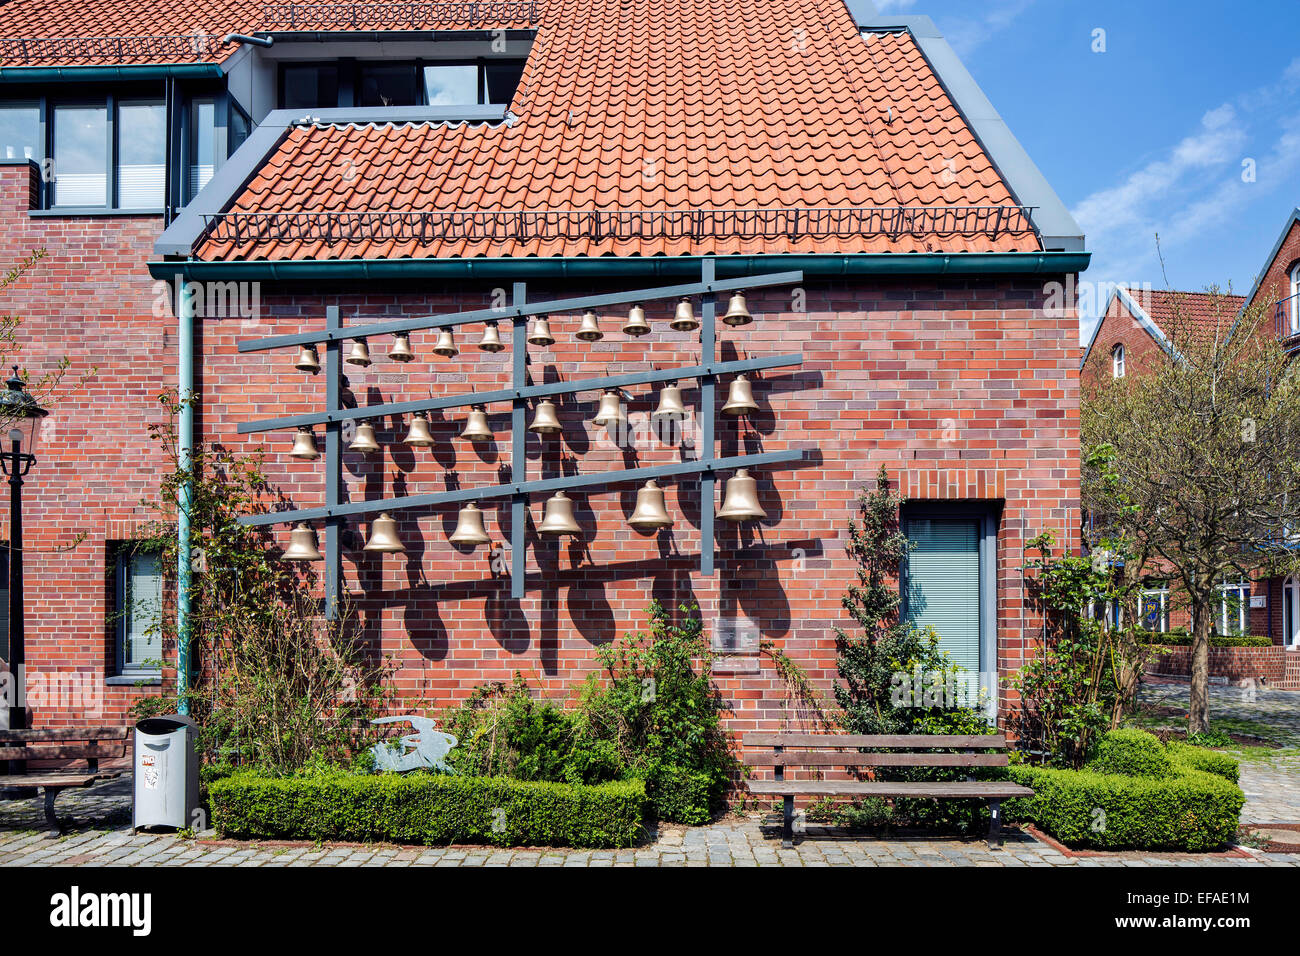 Carillon, Stavenort, Buxtehude, Altes Land, Lower Saxony, Germany - Stock Image